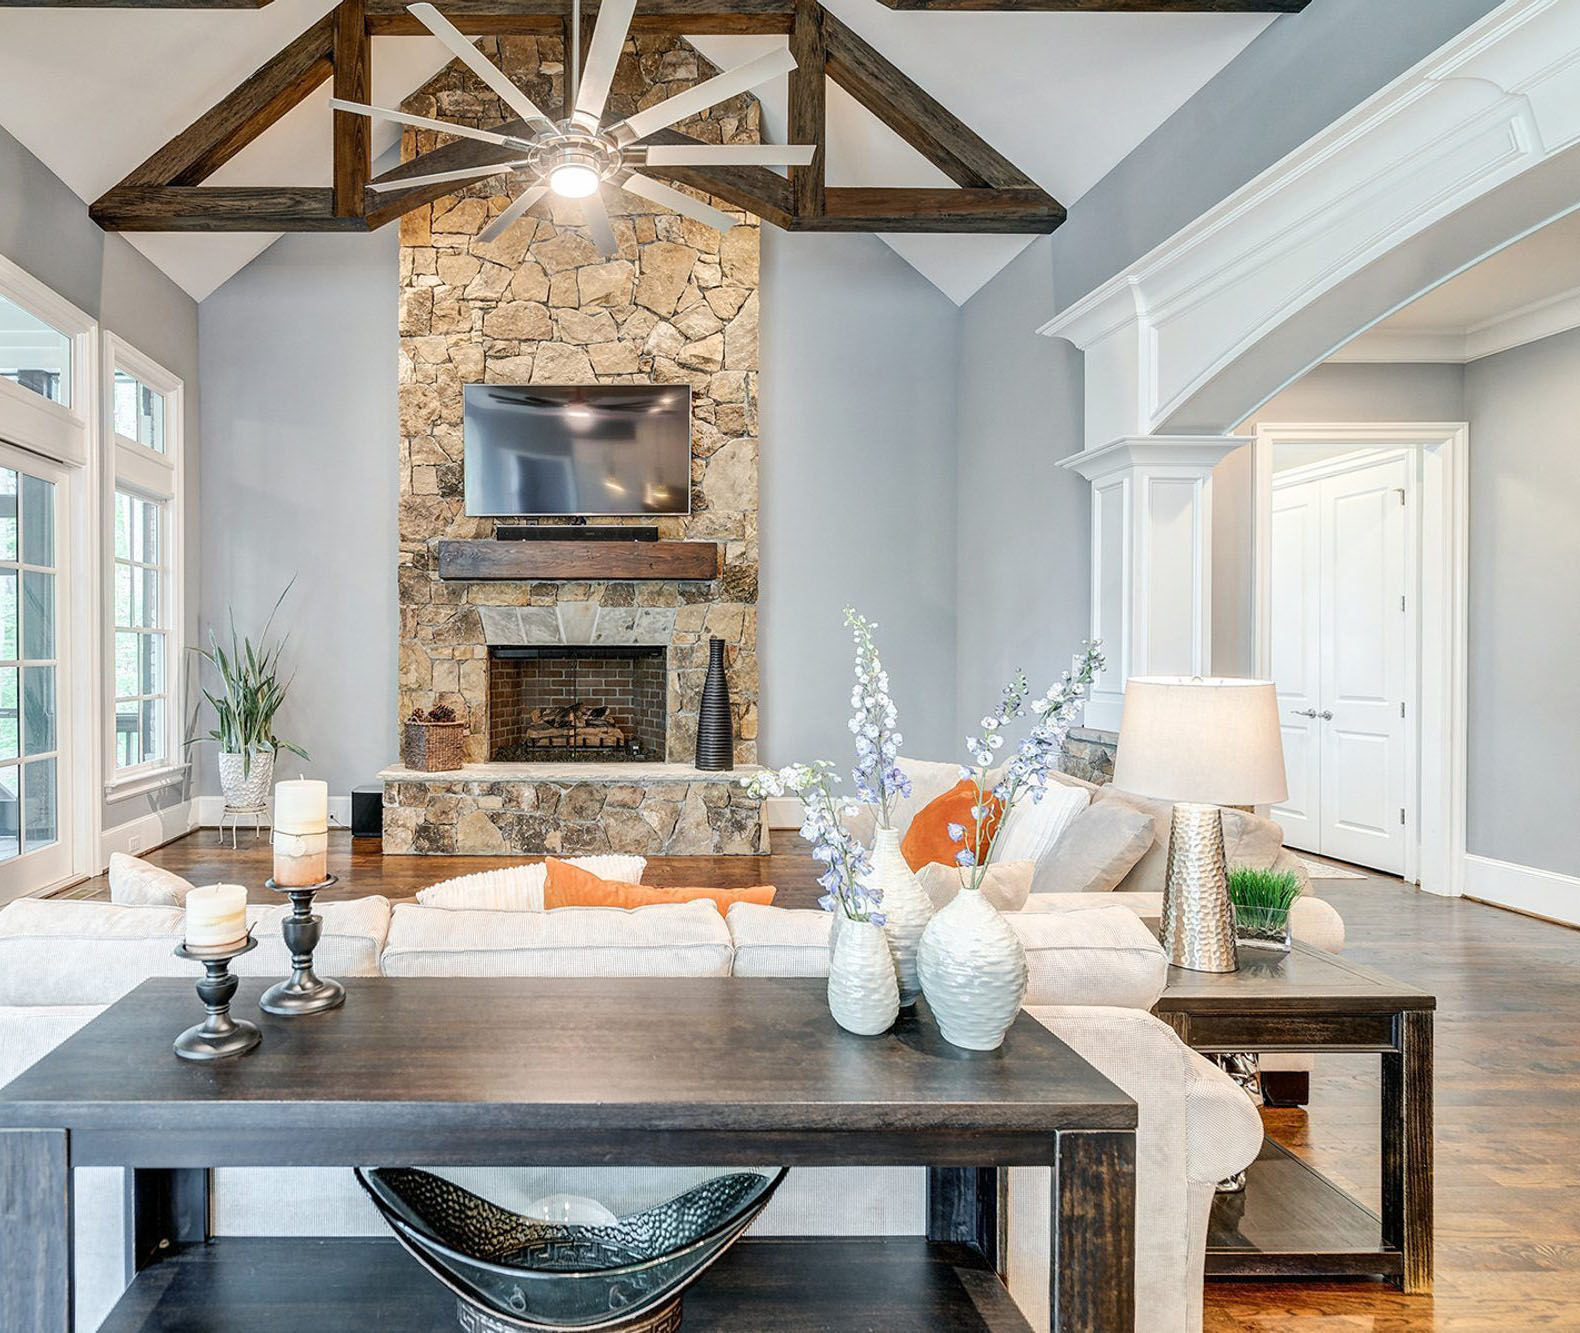 Wood burning fireplace with irregularly shaped real stones, a raised hearth and wood shelf.